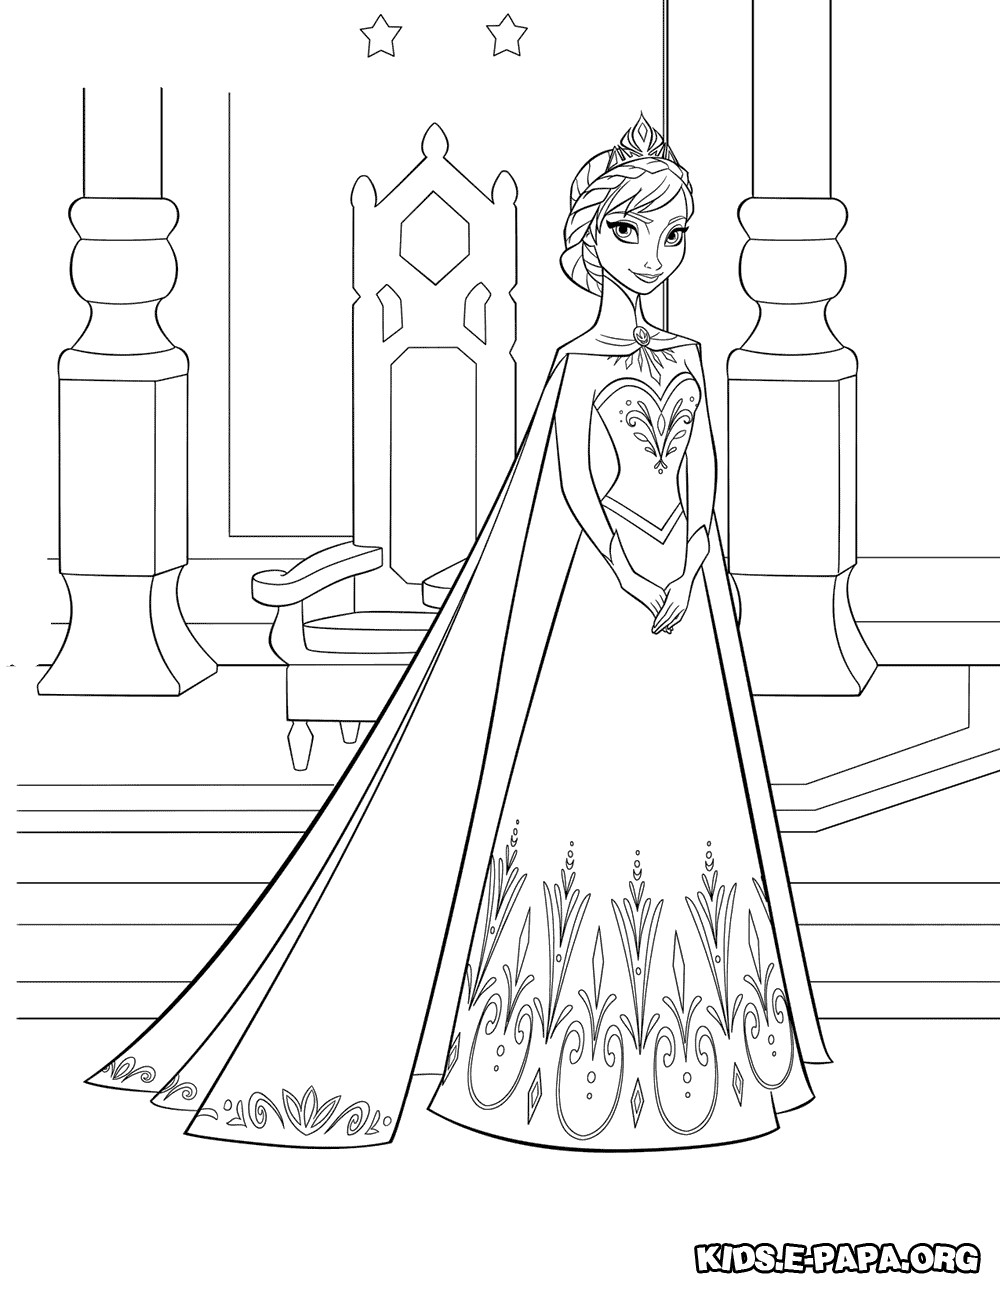 Eiskönigin Ausmalbilder Elsa : Images For Olaf Coloring Pages Online Codebuy109 Cf